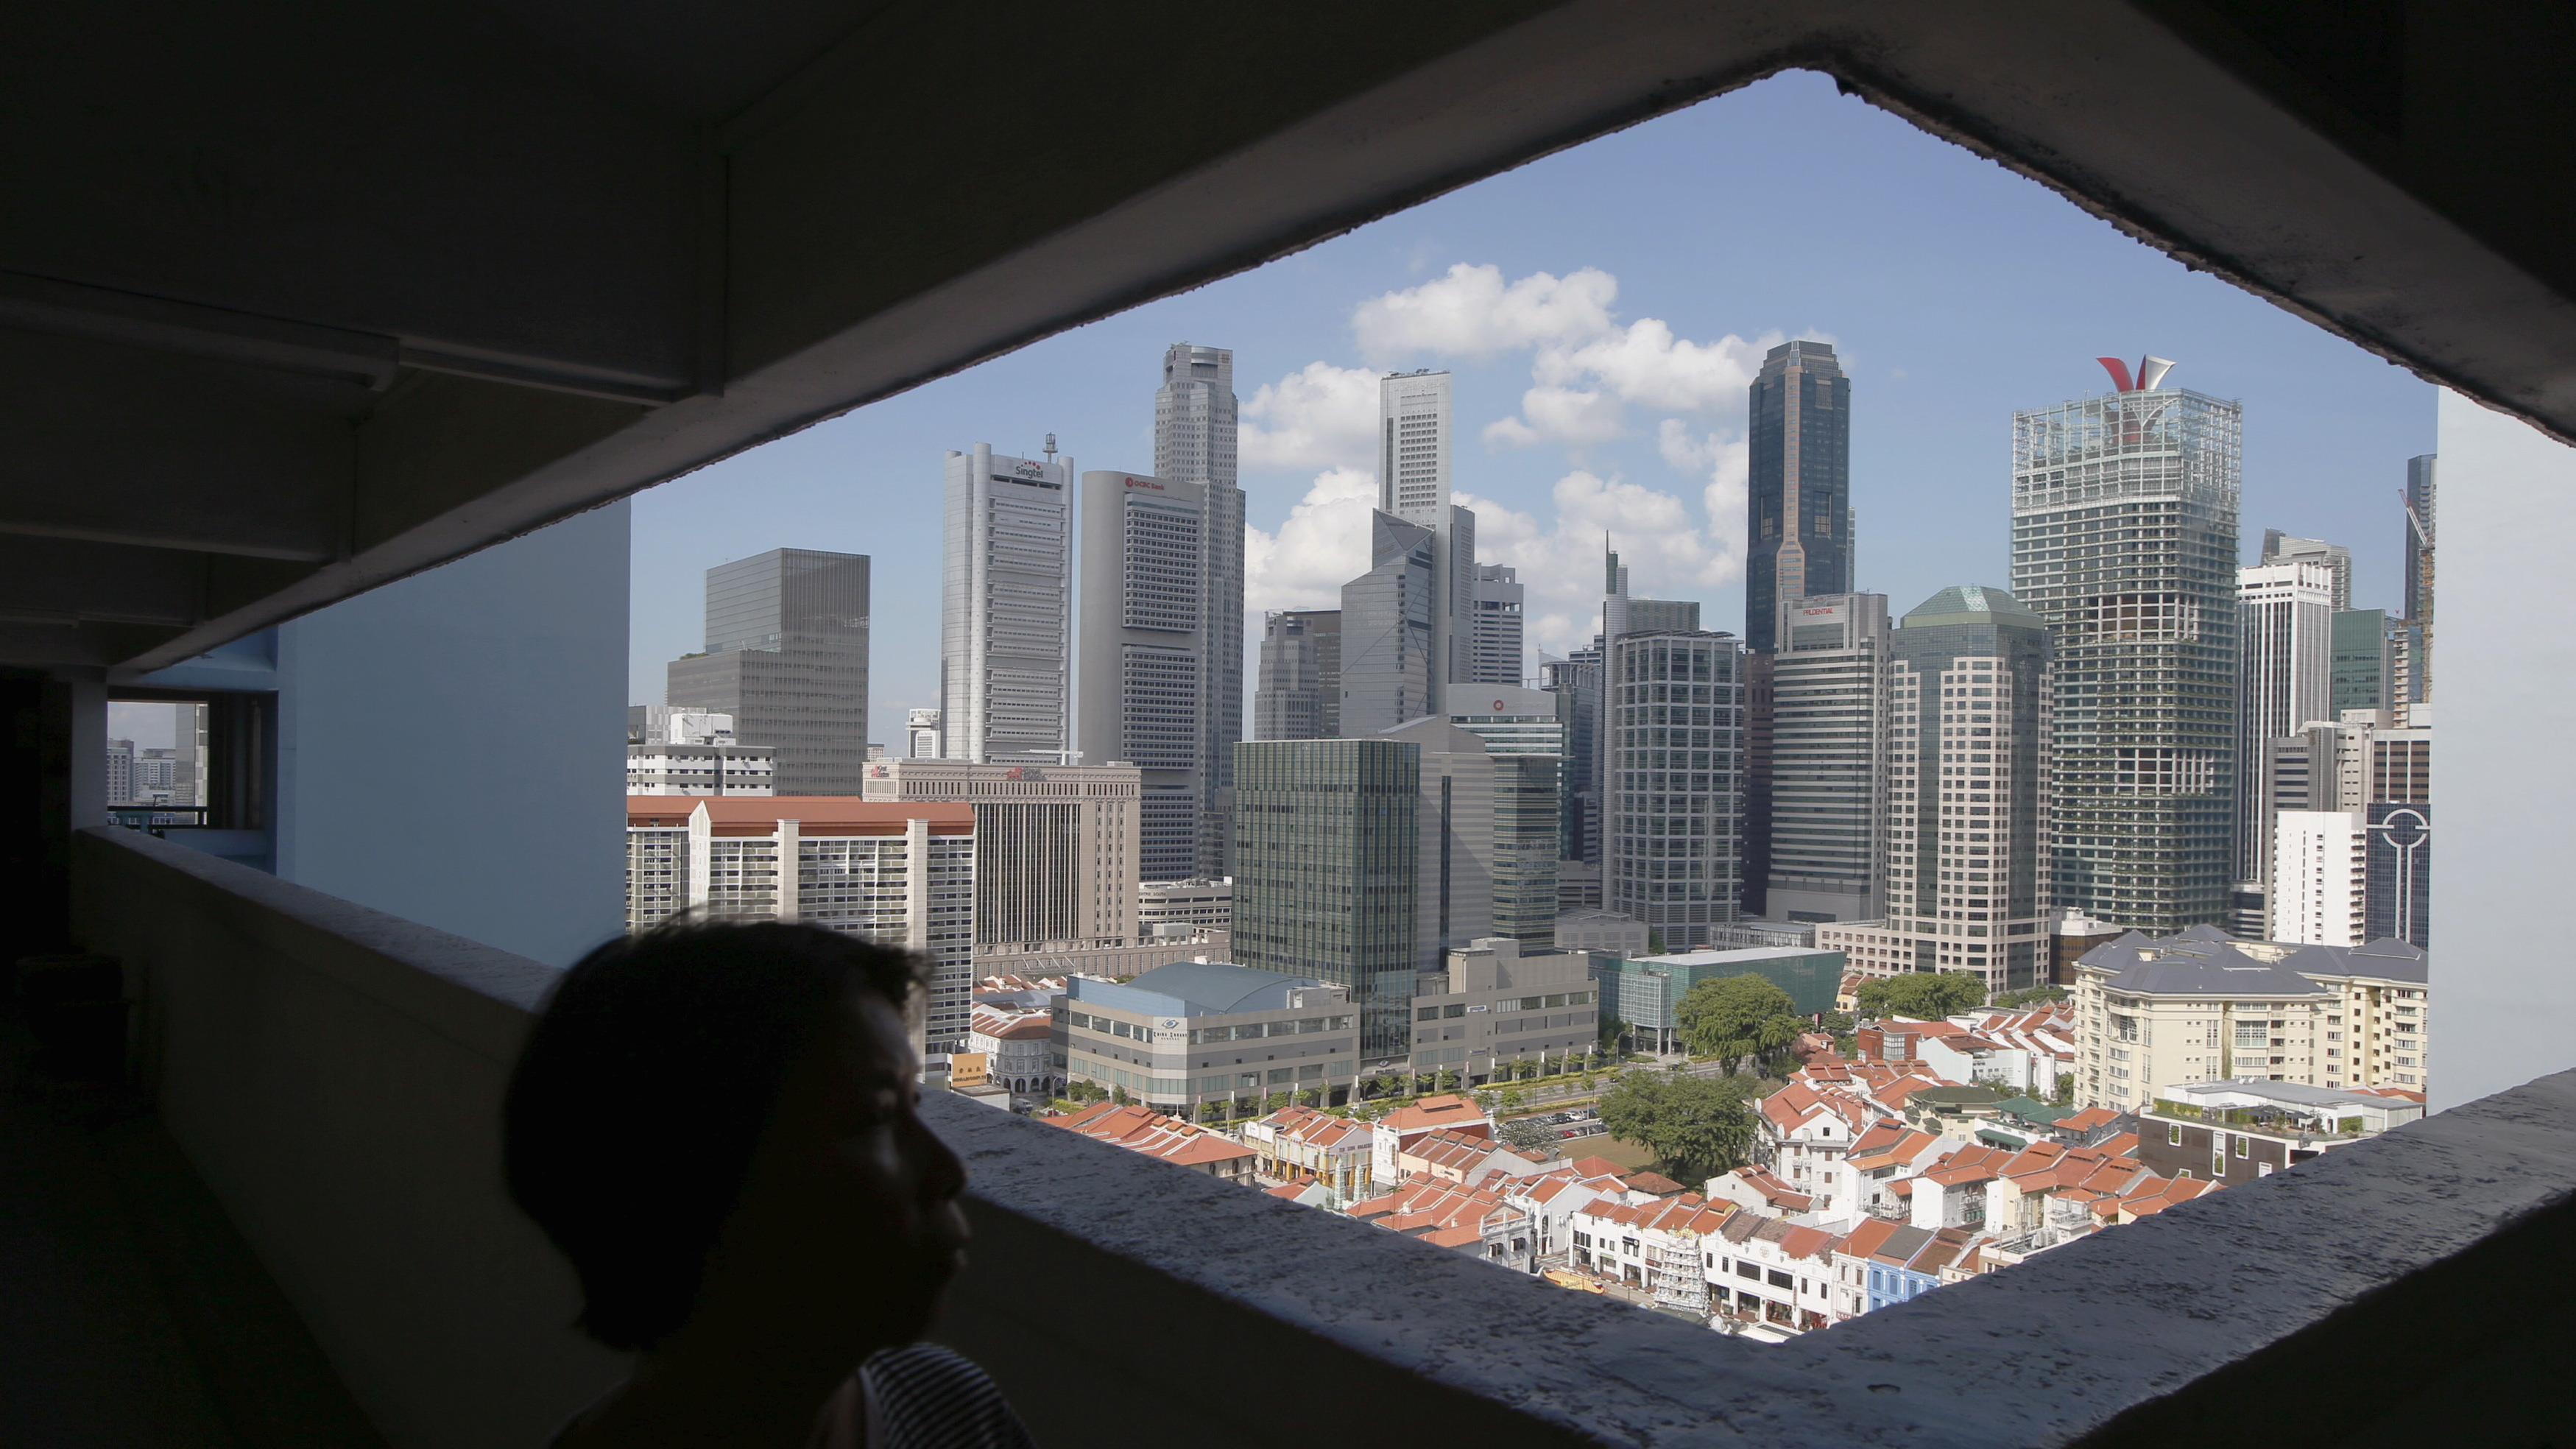 A woman passes the skyline of the central business district, in a public housing estate in Singapore